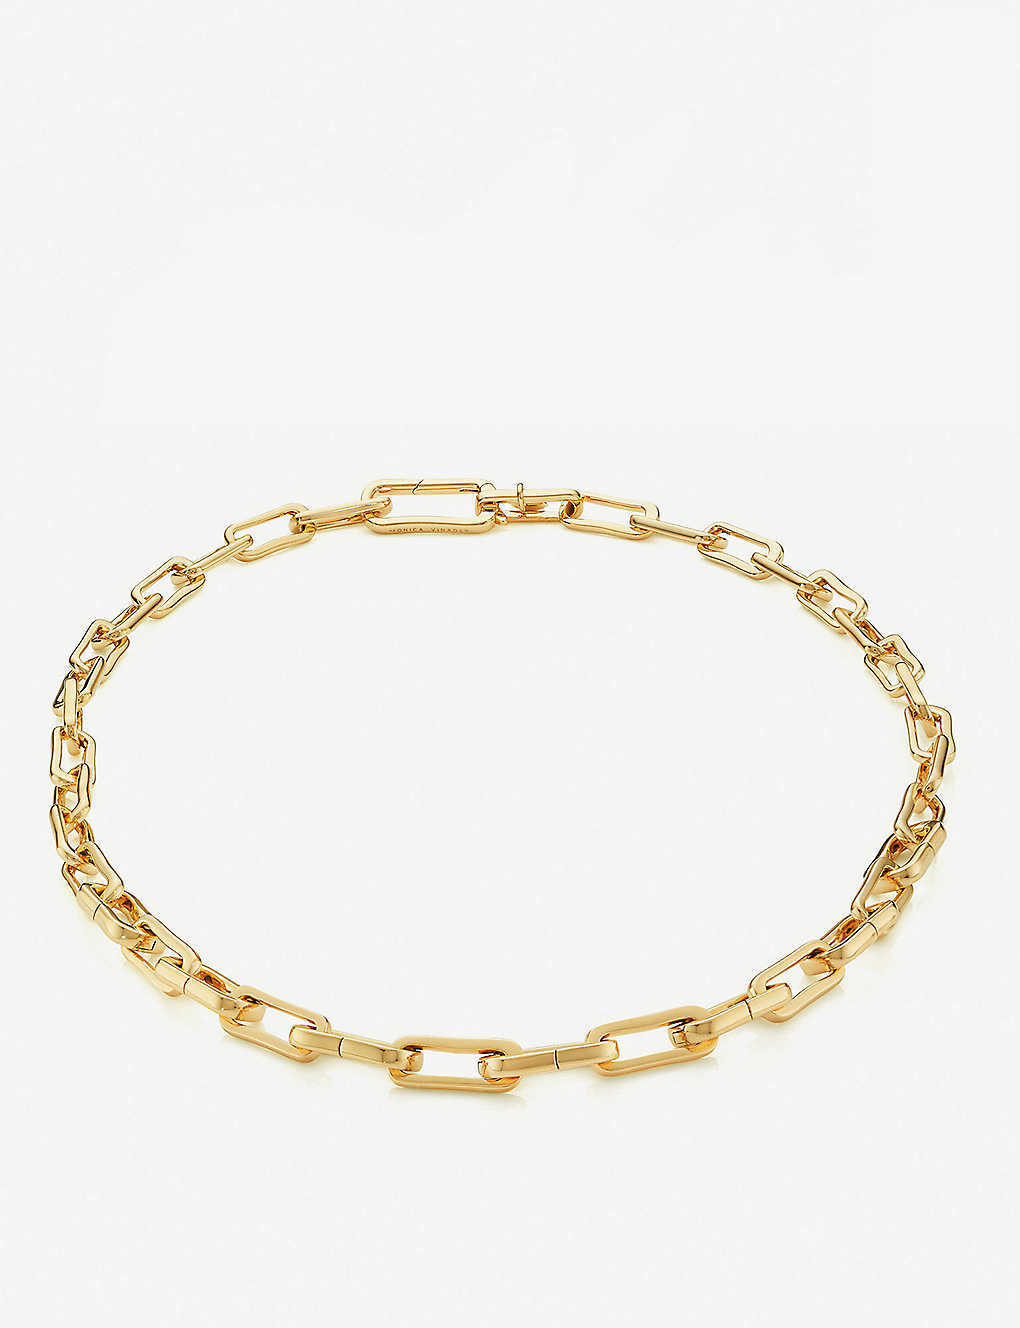 MONICA VINADER: Alta Capture Charm 18ct gold-vermeil link necklace